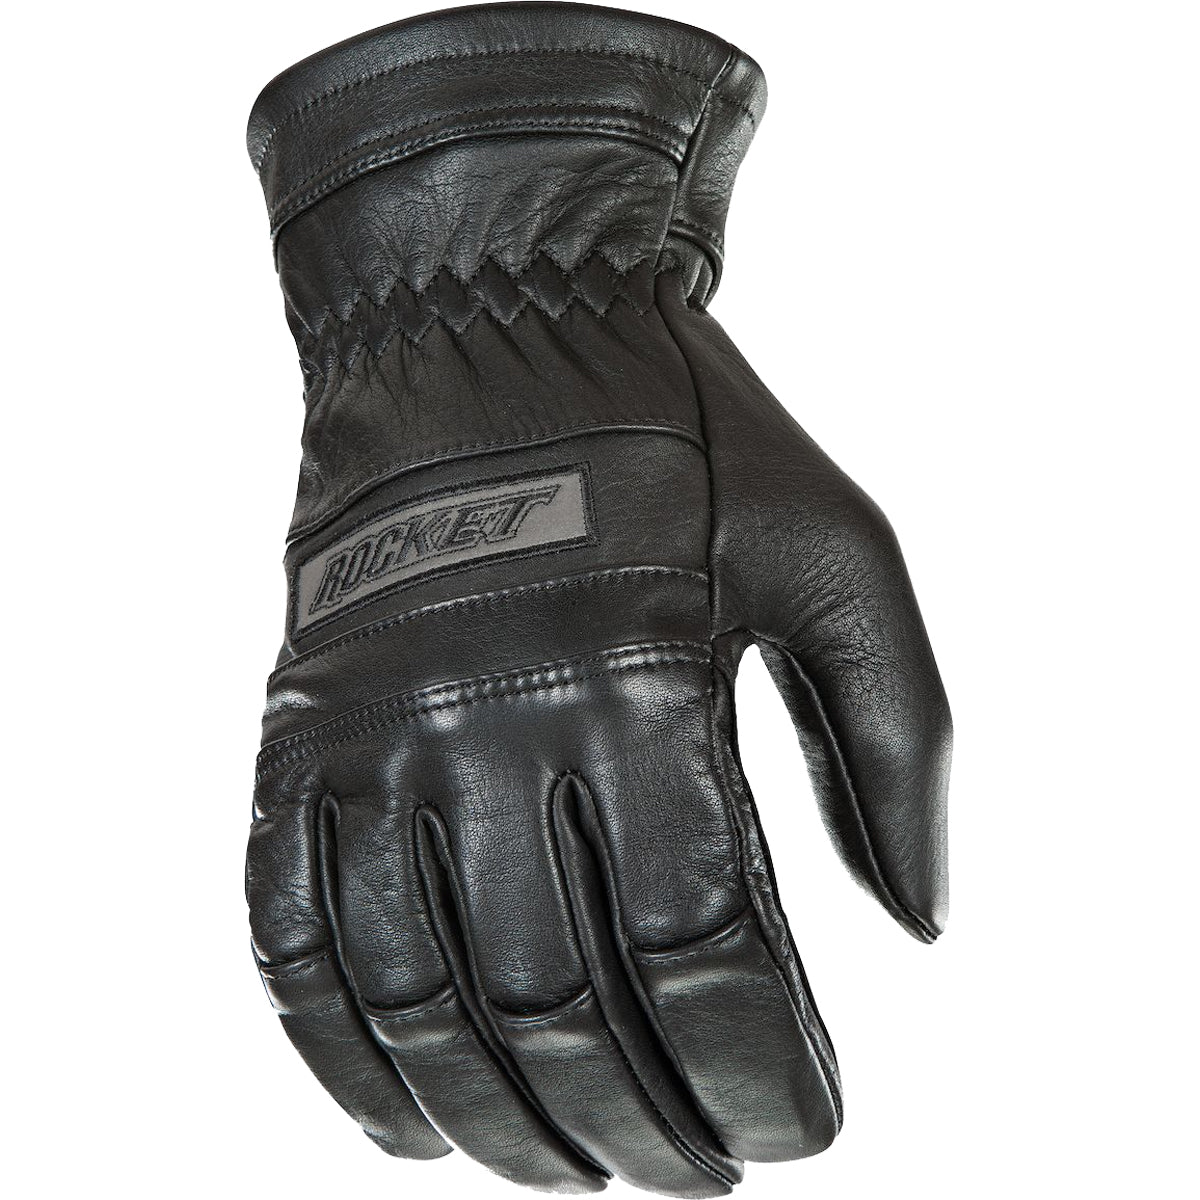 Joe Rocket Classic Men's Street Gloves - Black